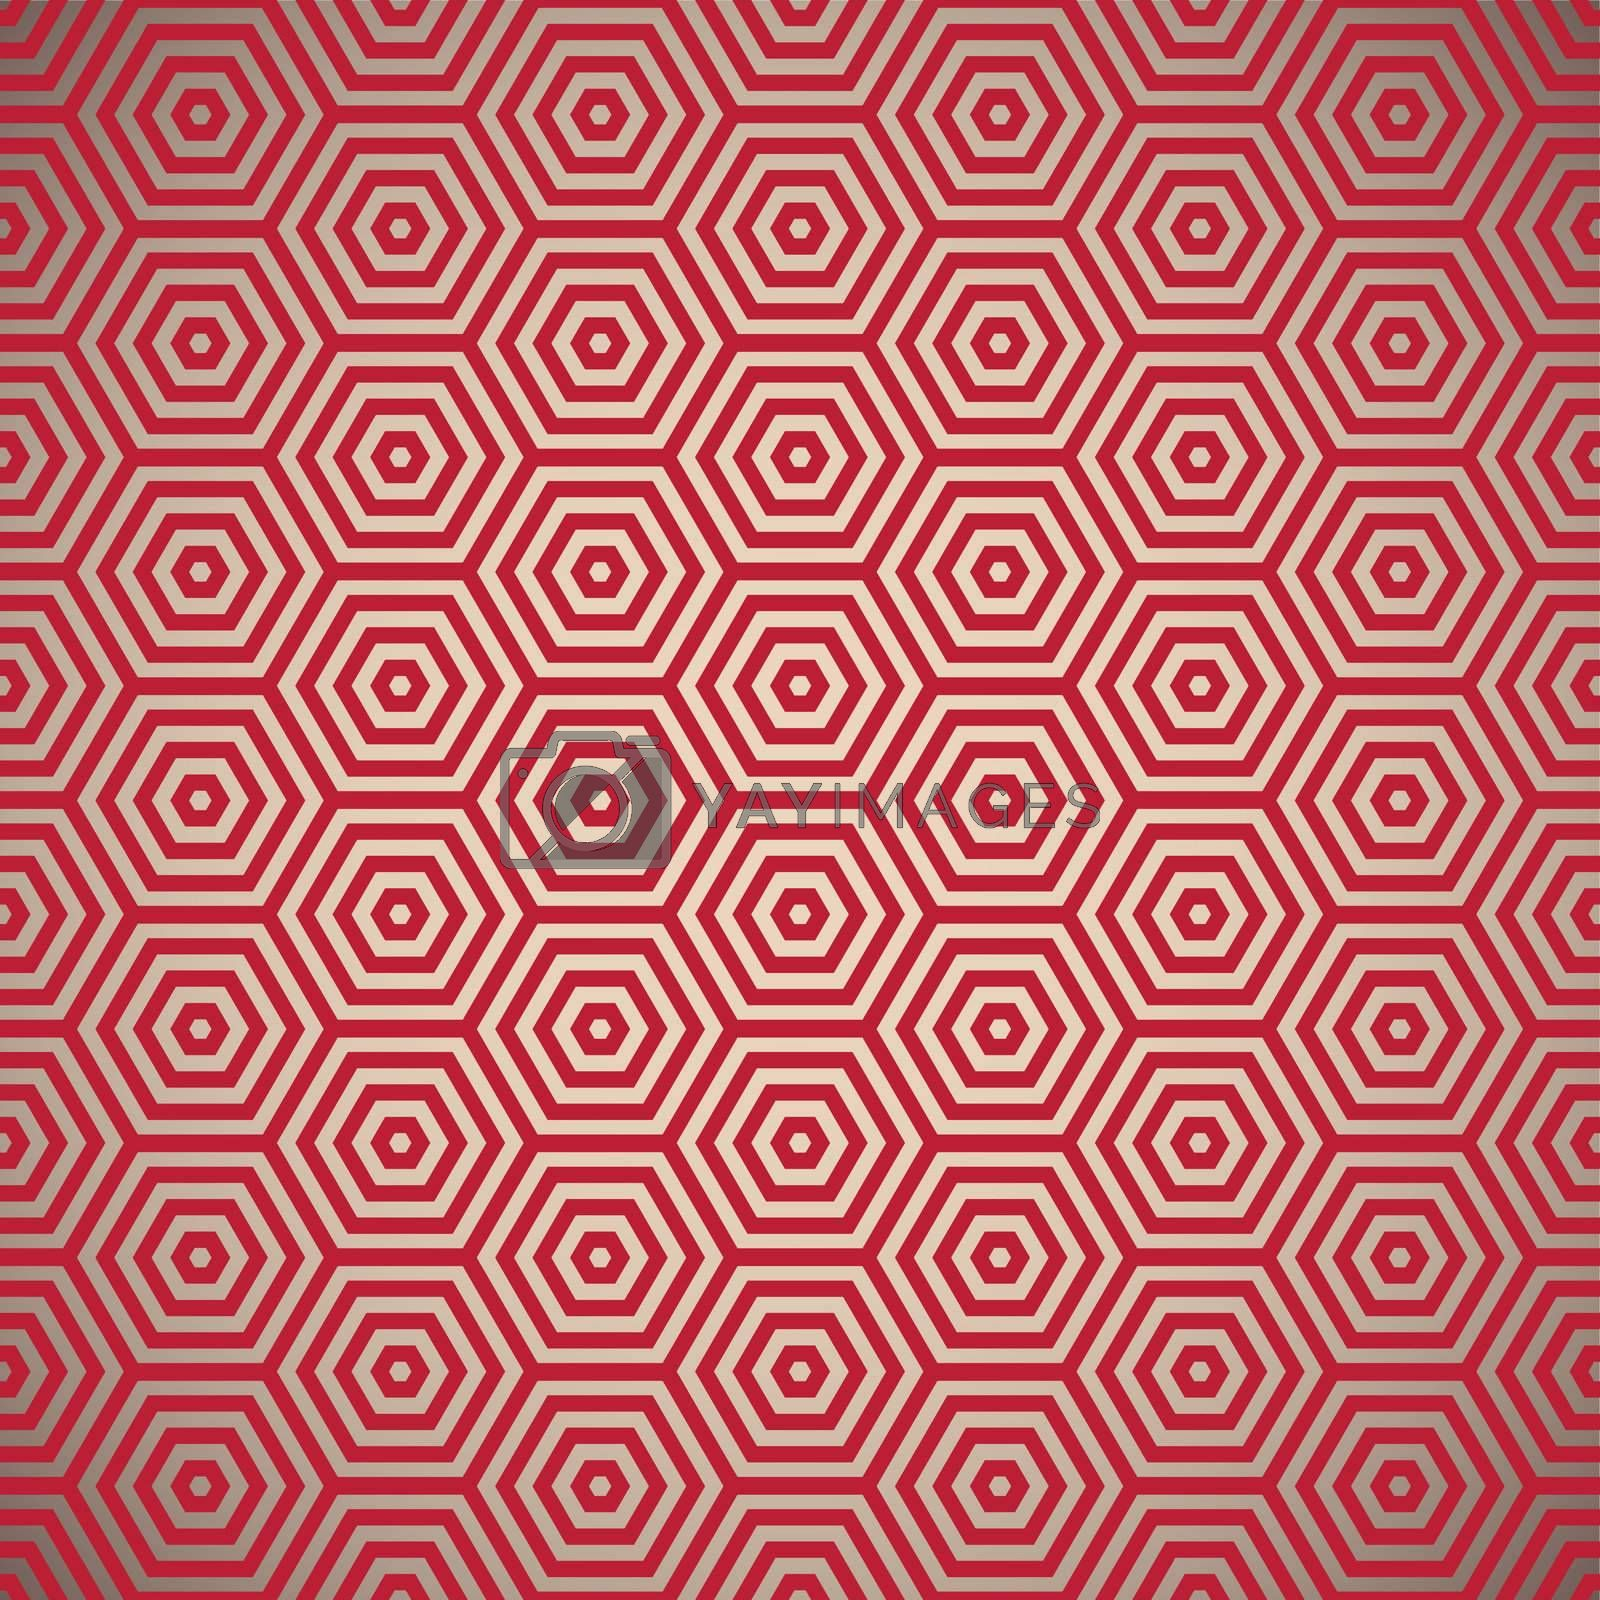 Retro inspired red seamless background pattern design